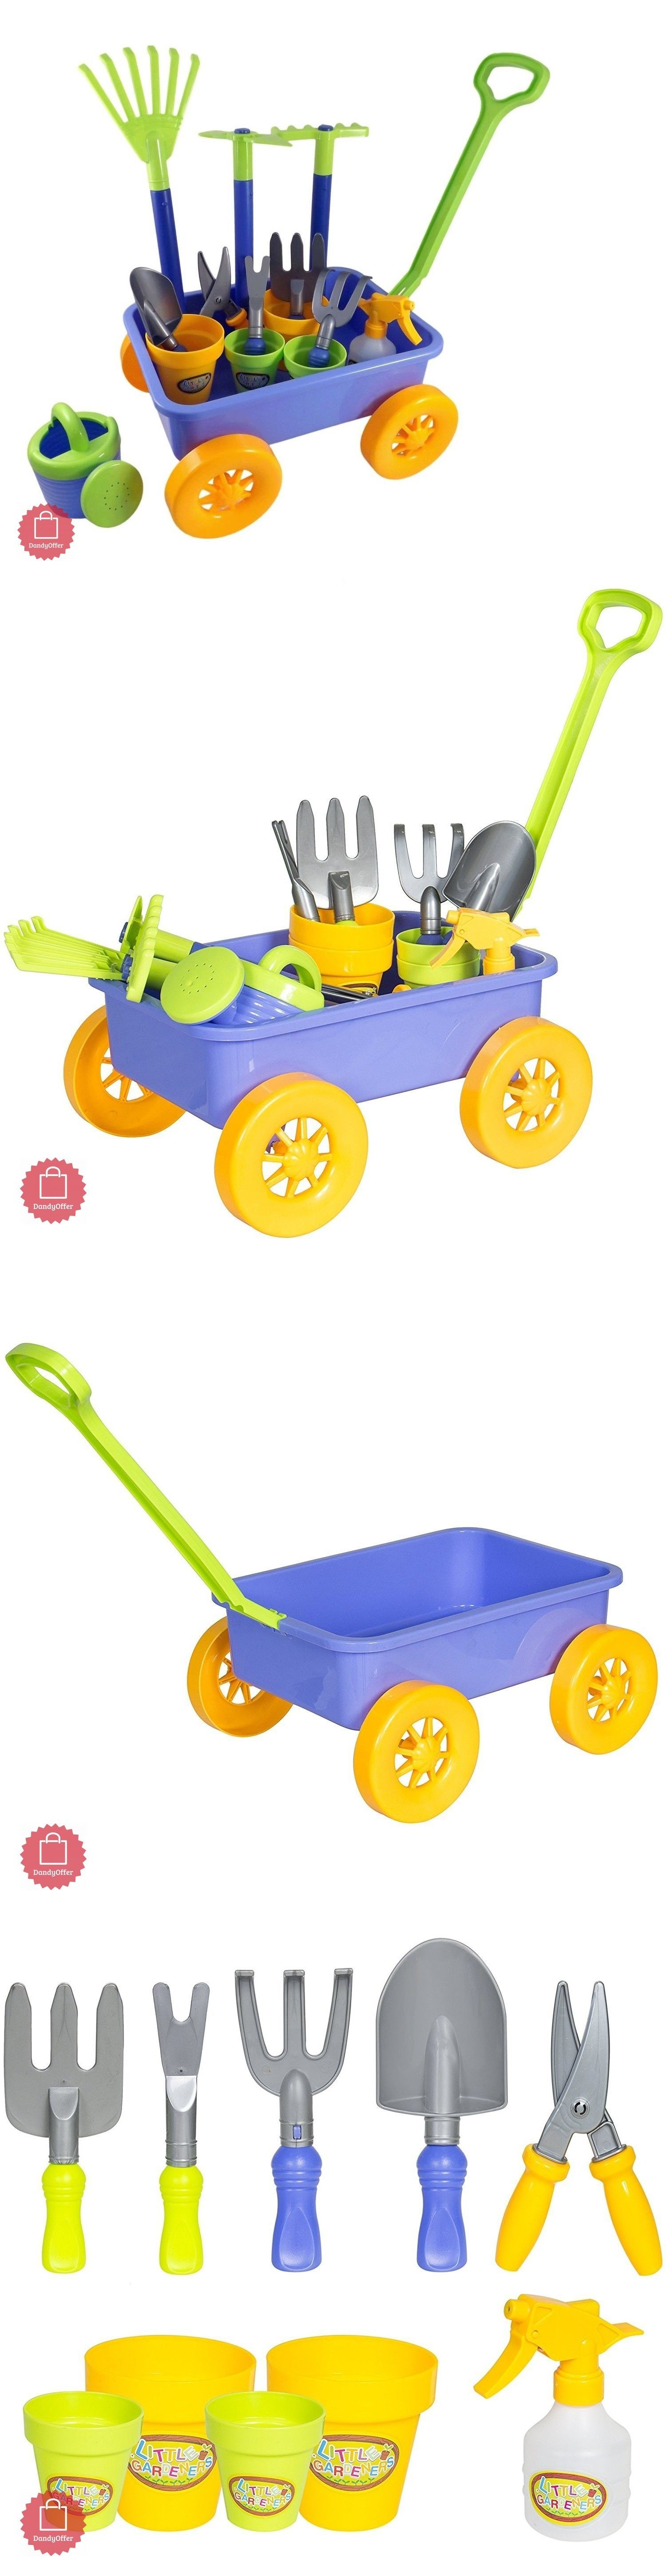 Other Preschool and Pretend Play Educational Toys For 4 5 6